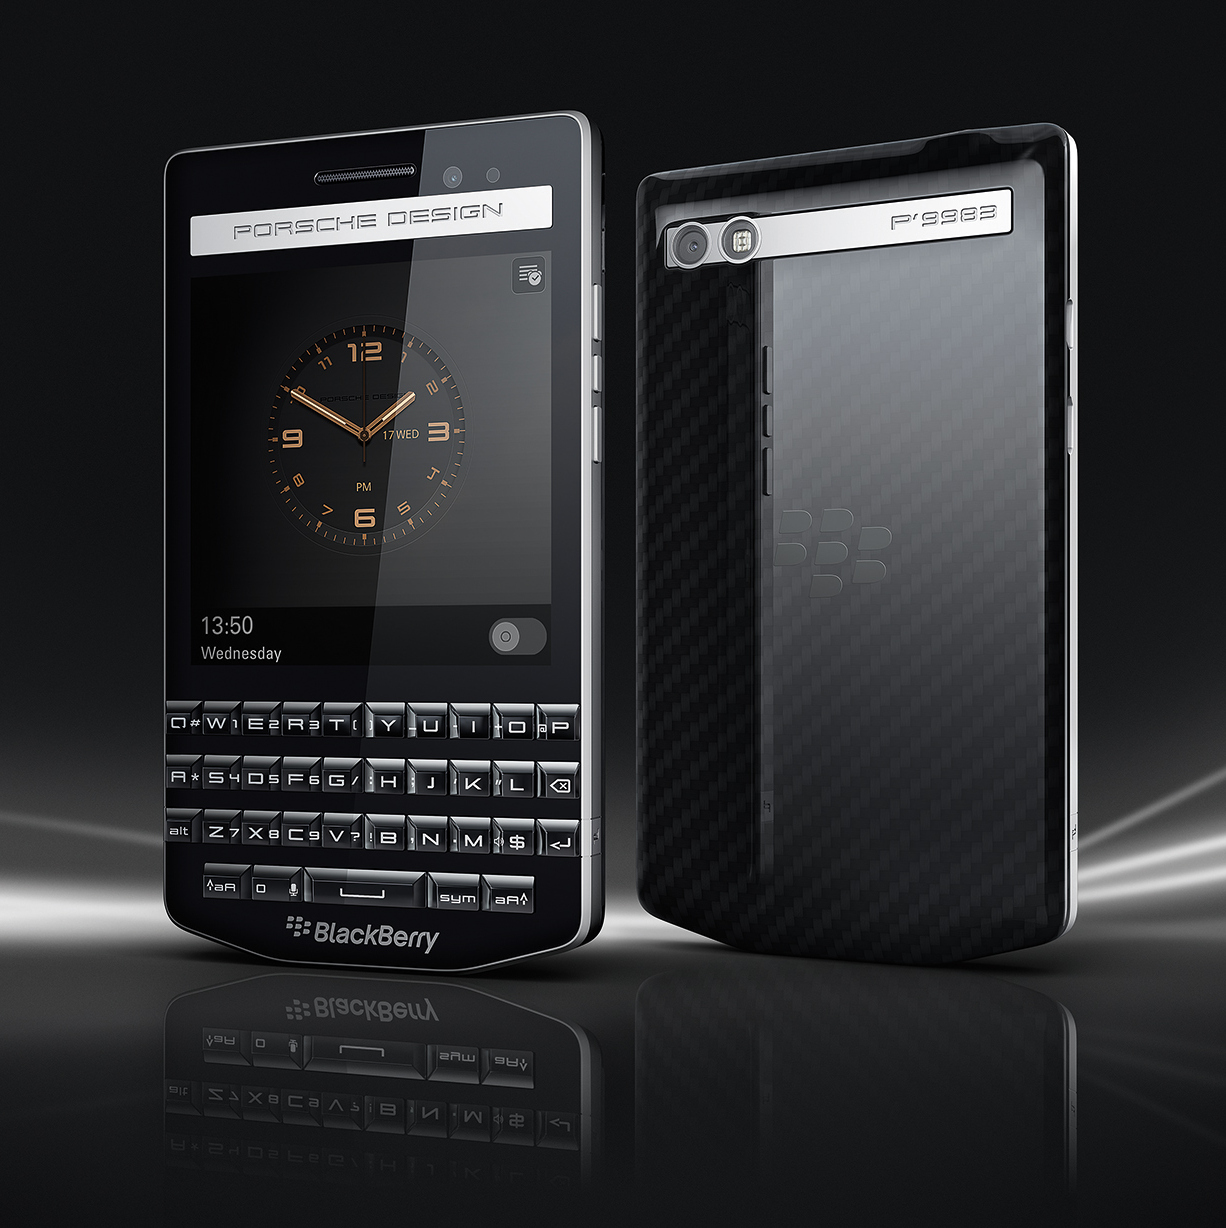 How to Hard Reset BlackBerry P9983 (Porsche Design)